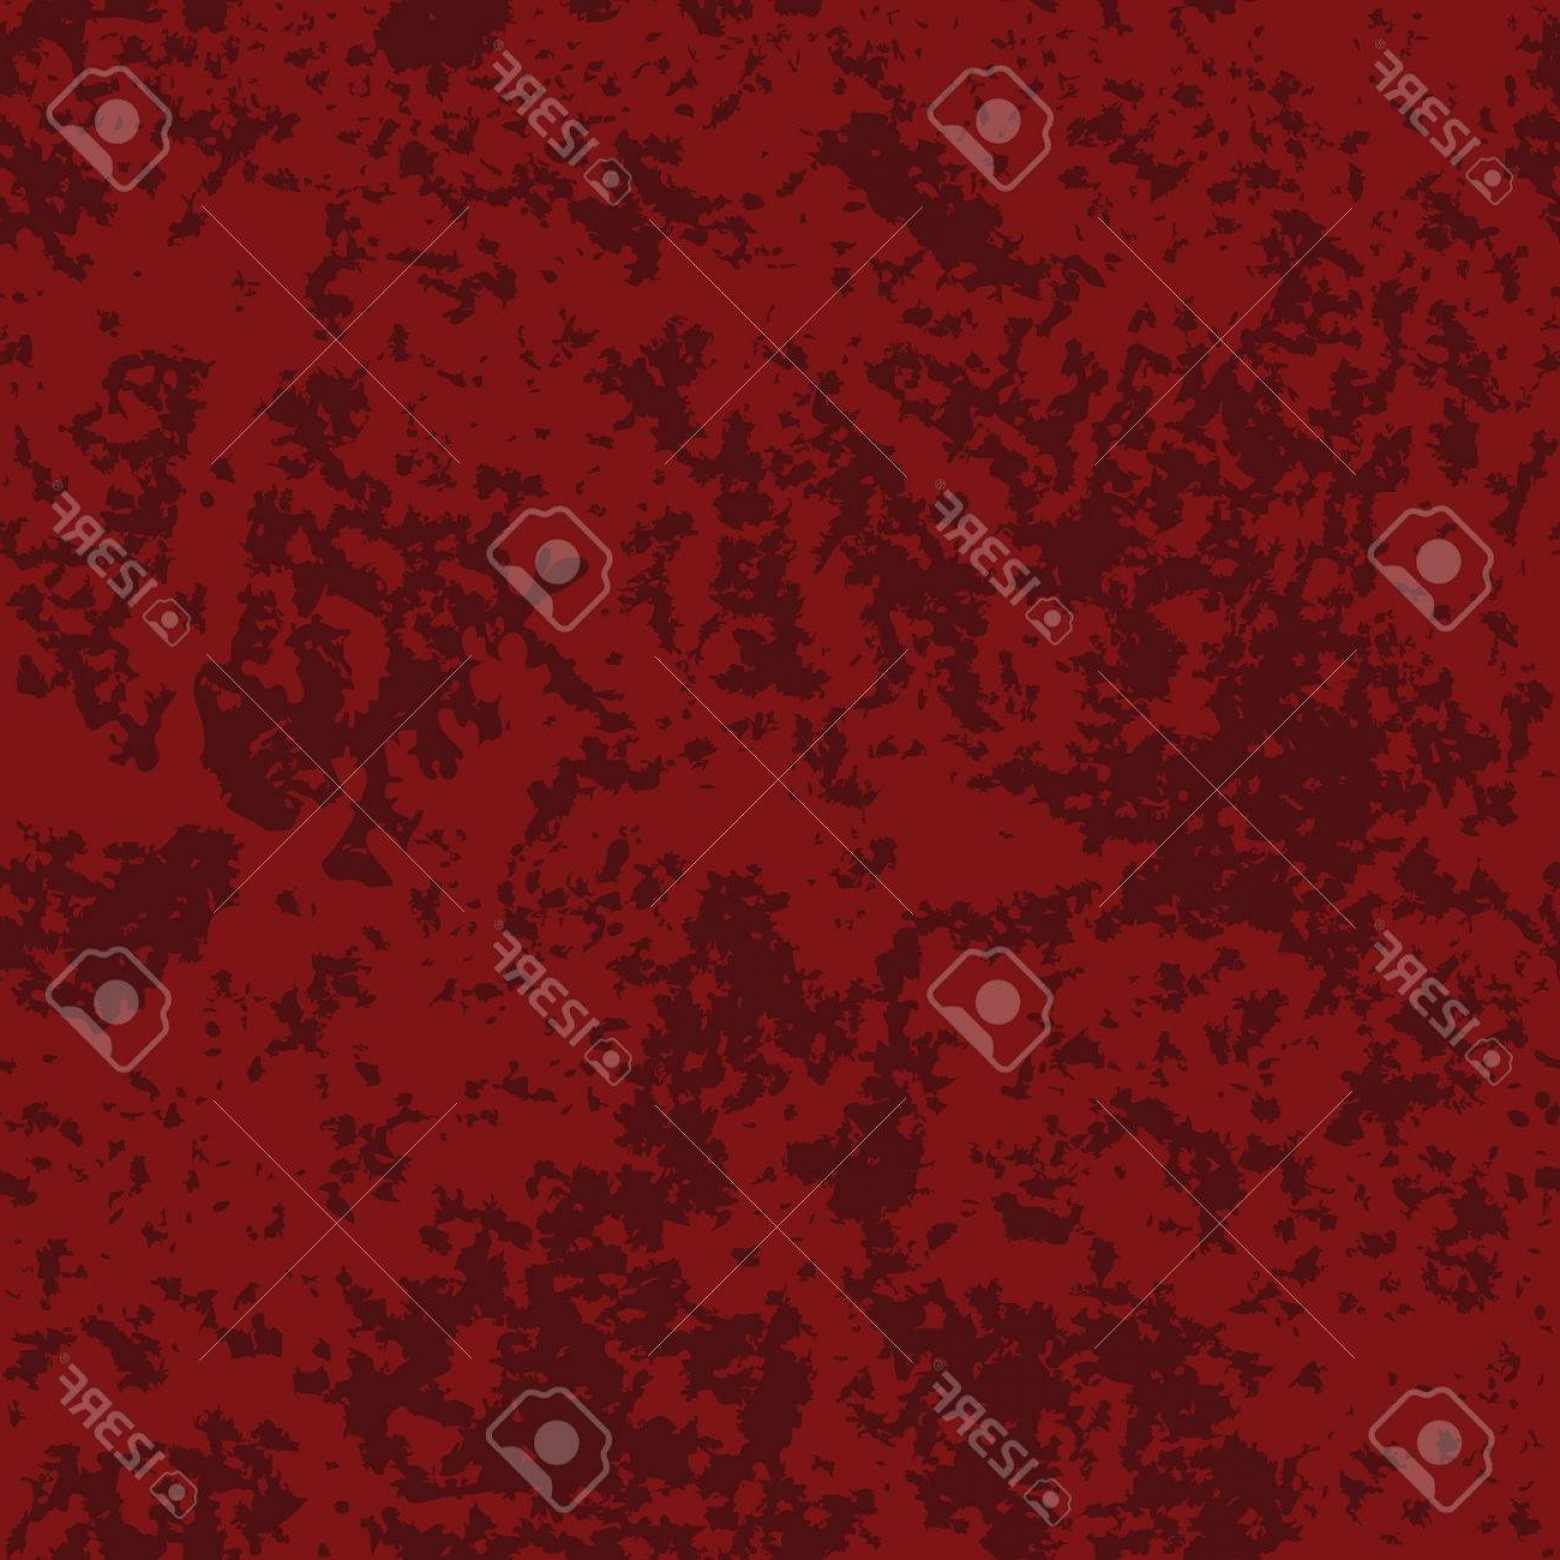 Distressed Red Background Vector: Photostock Vector Abstract Distressed Texture Grunge Background Vector Seamless Pattern In Red Colors